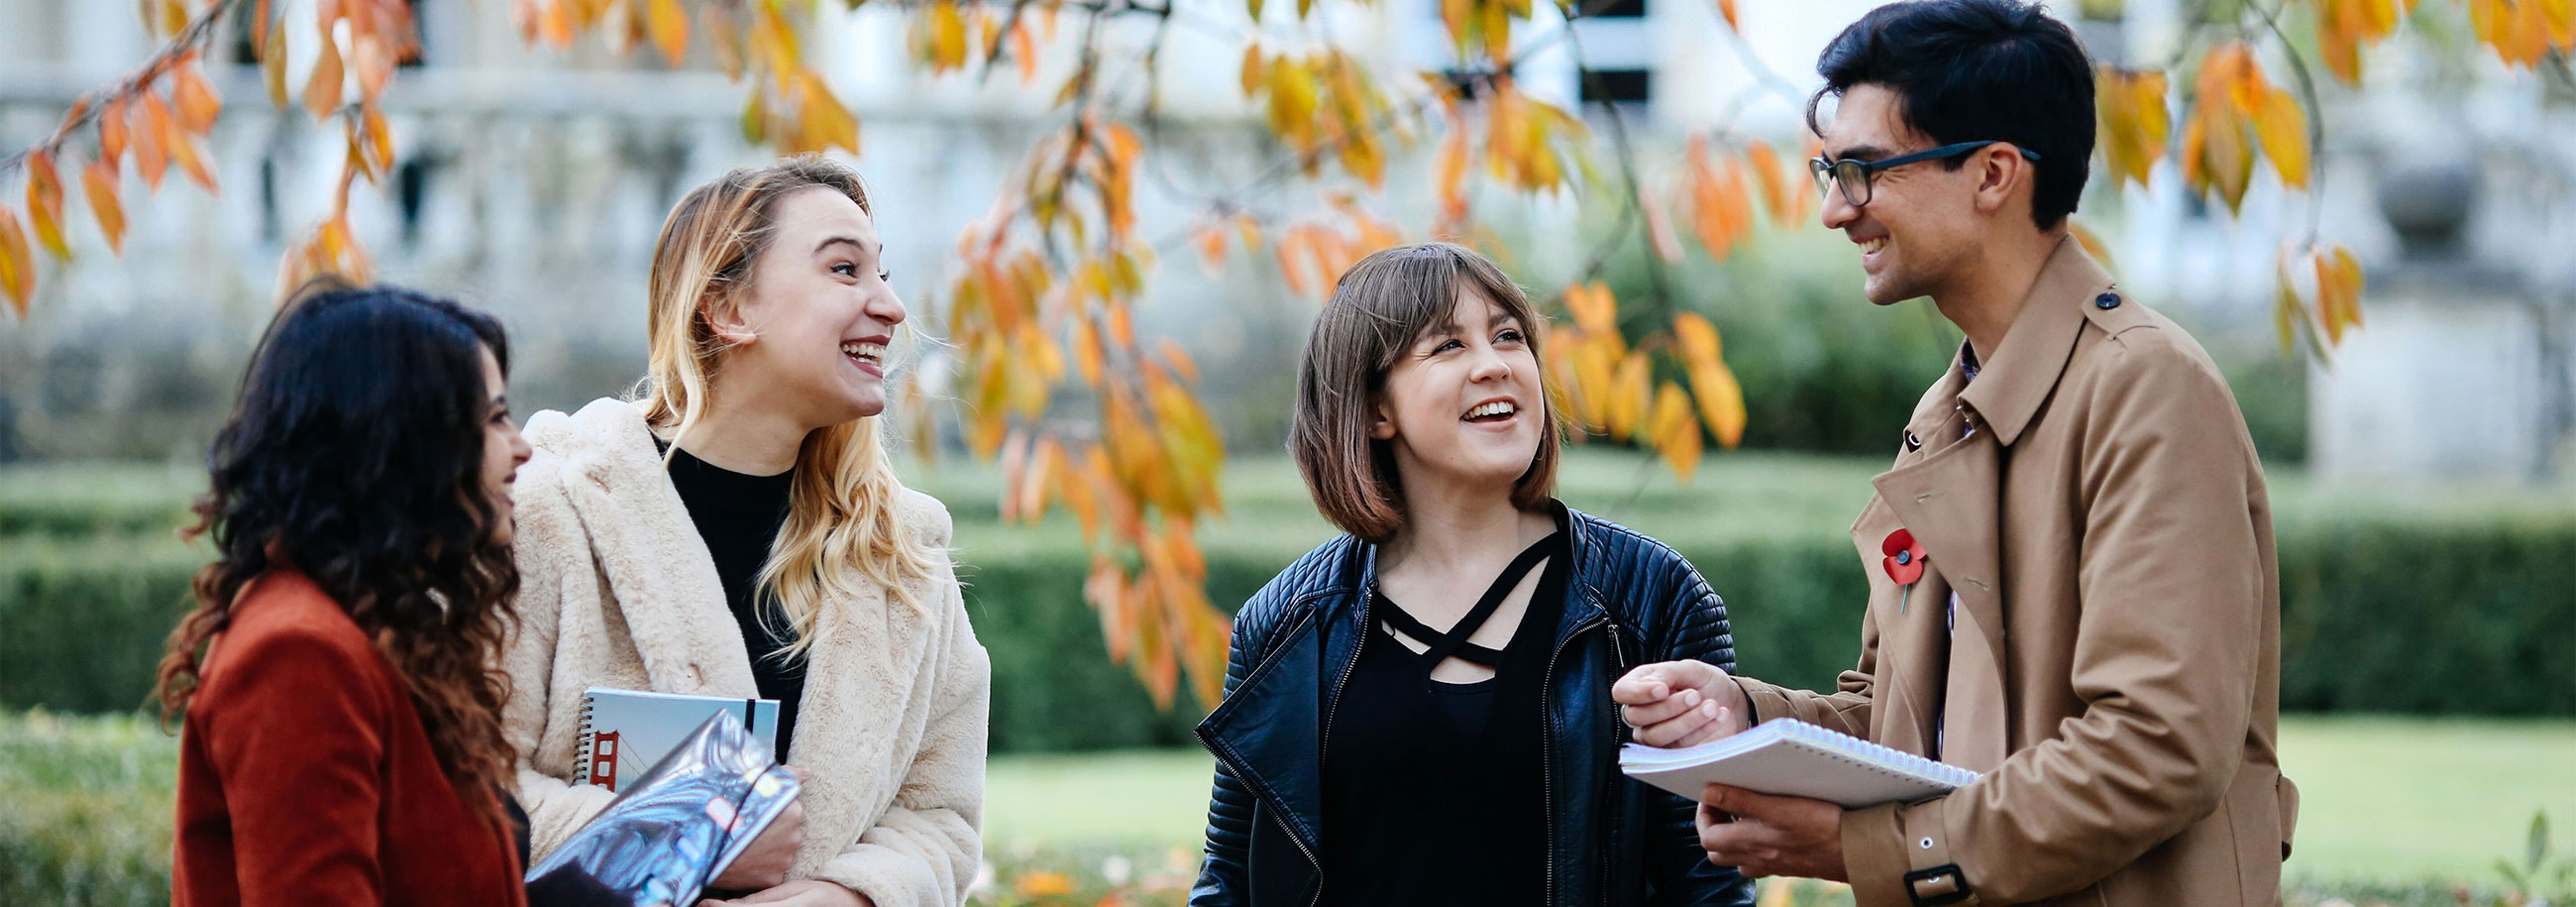 Image -  Visit us  Open days, events and campus tours